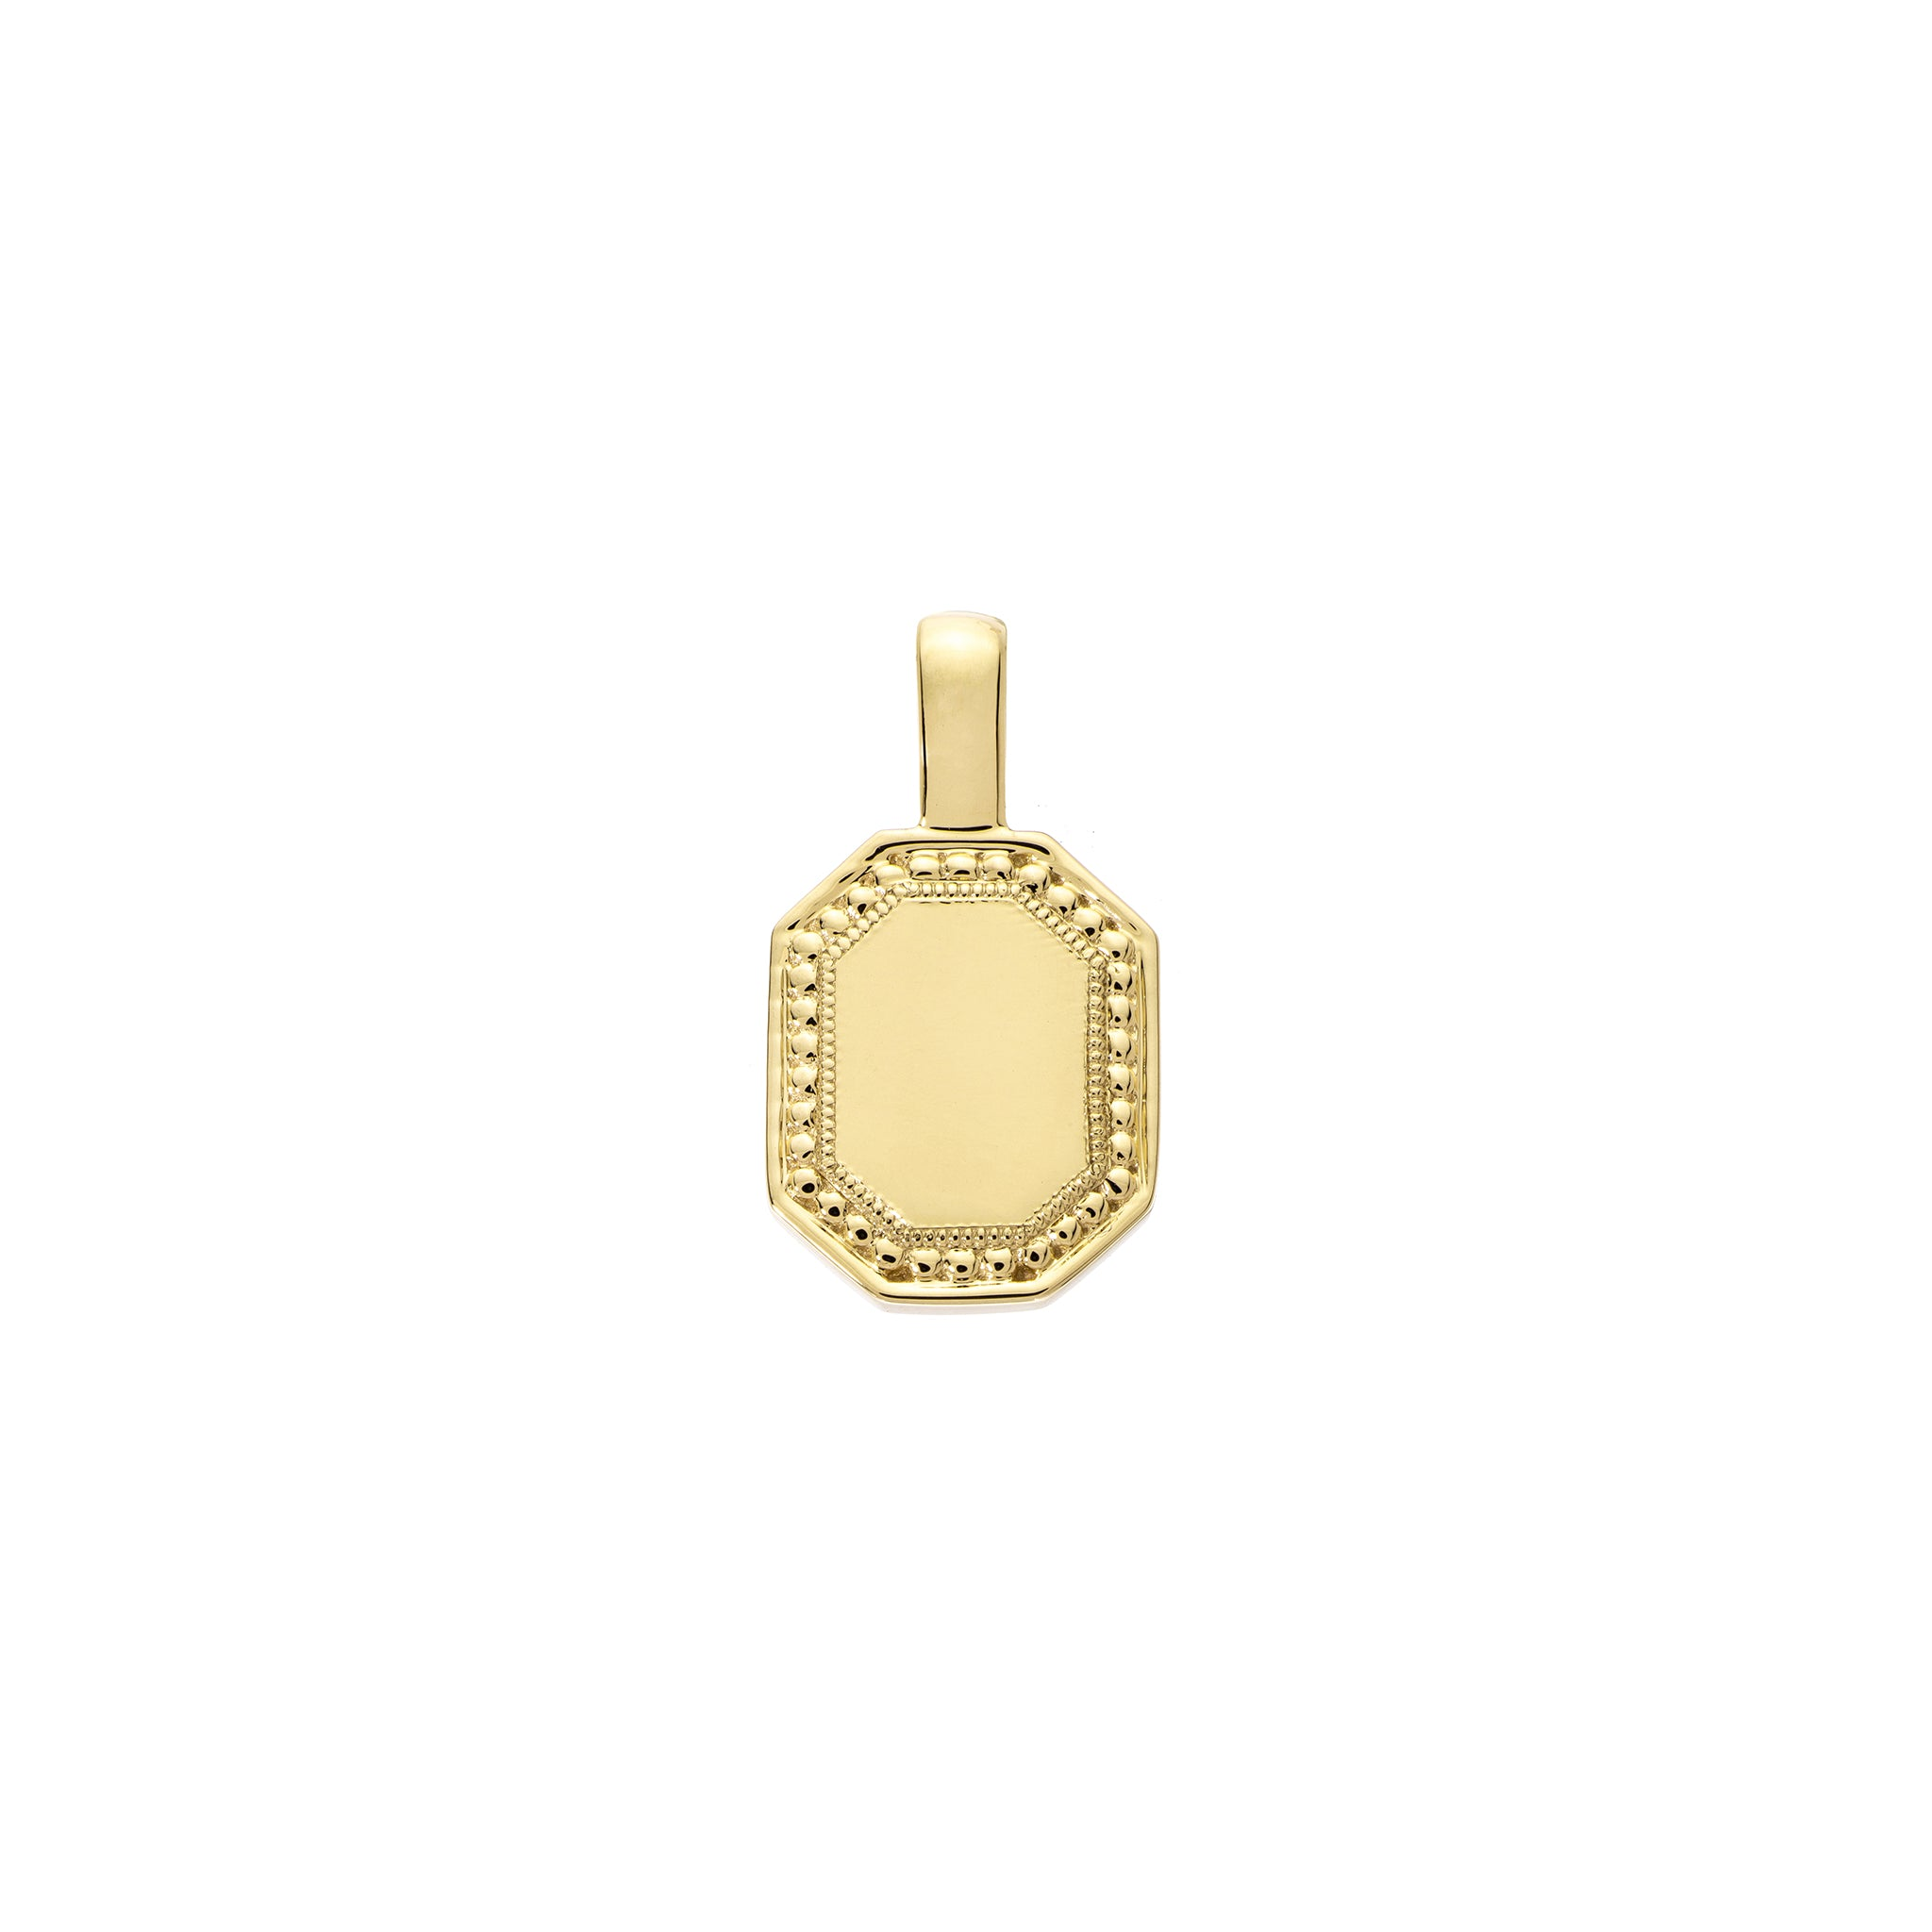 The PS Tag Charm Small 18K Yellow Gold